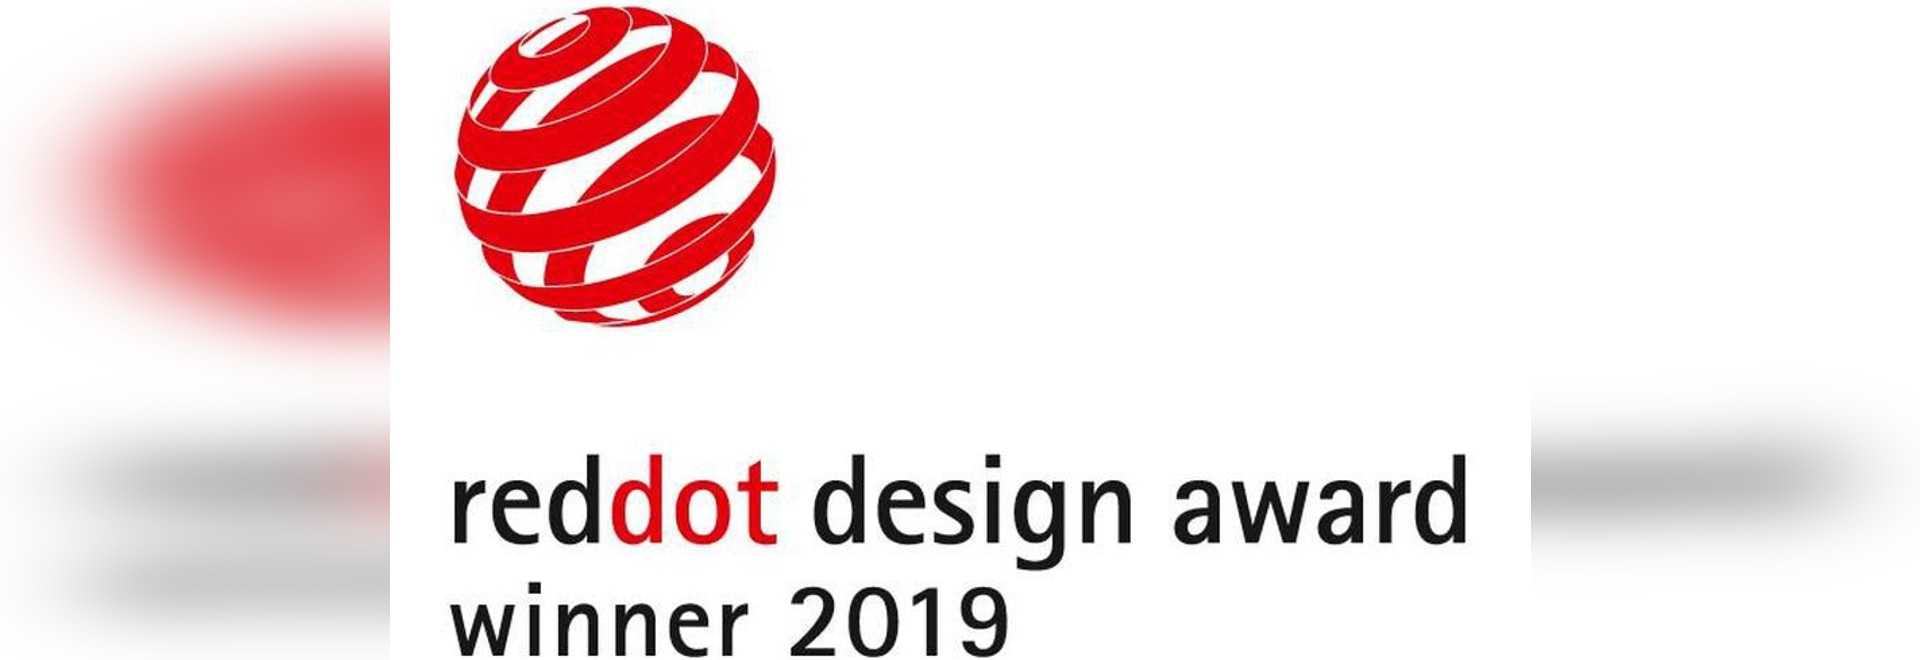 BURDA MODULAR receives distinction for high design quality in the Red Dot Award: Product Design 2019